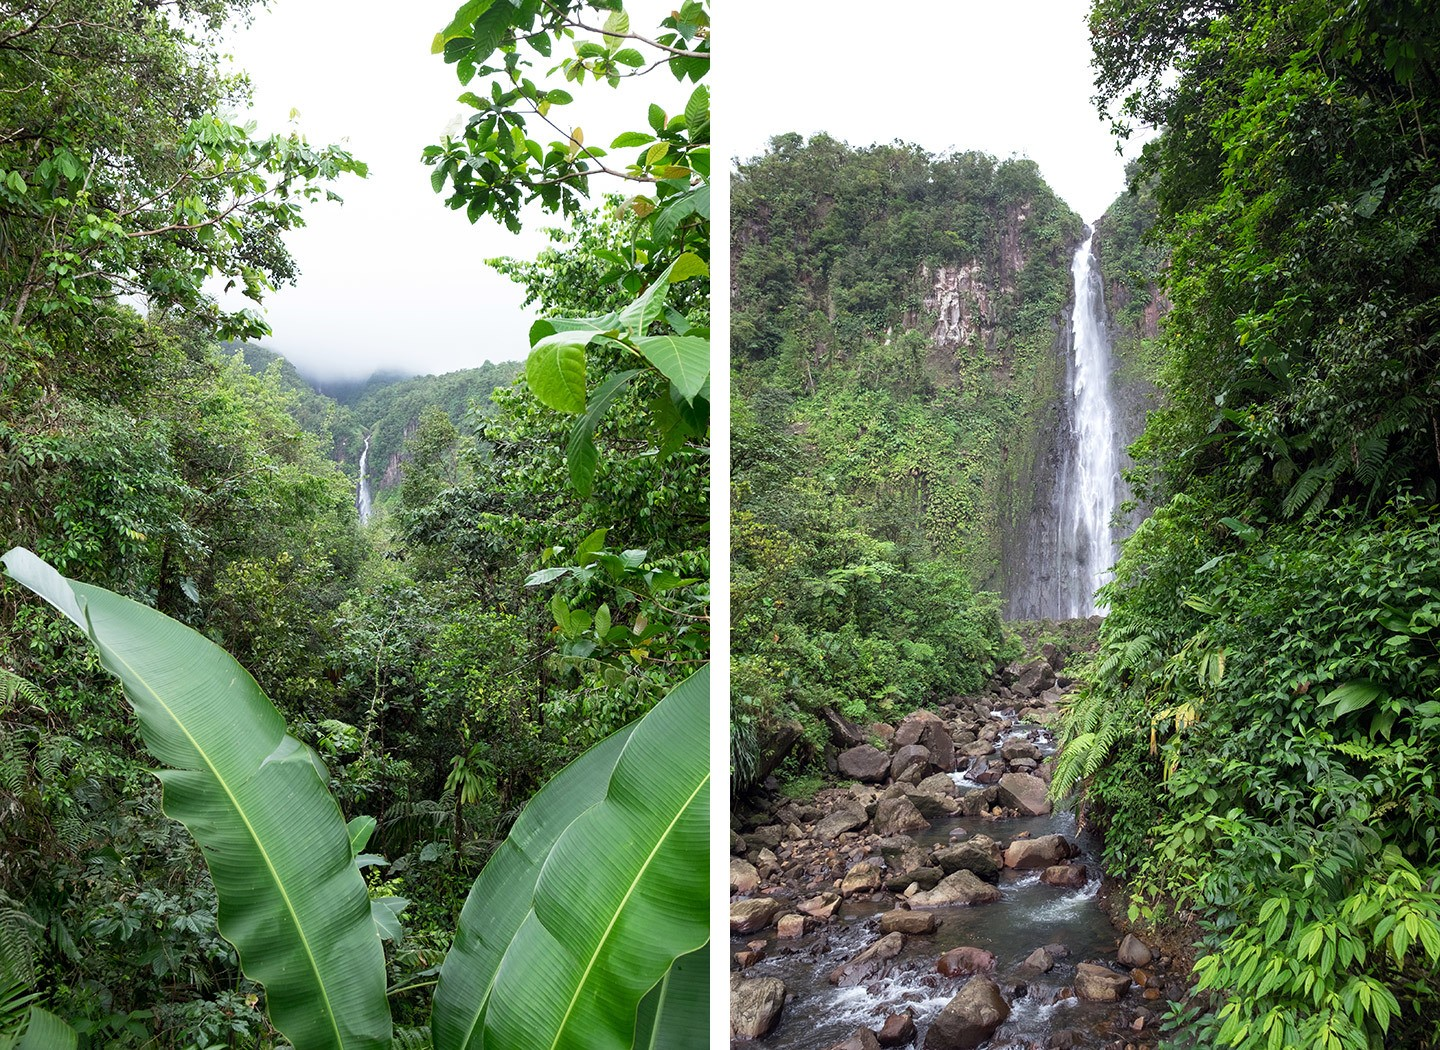 The Chutes du Carbet waterfalls in Guadeloupe